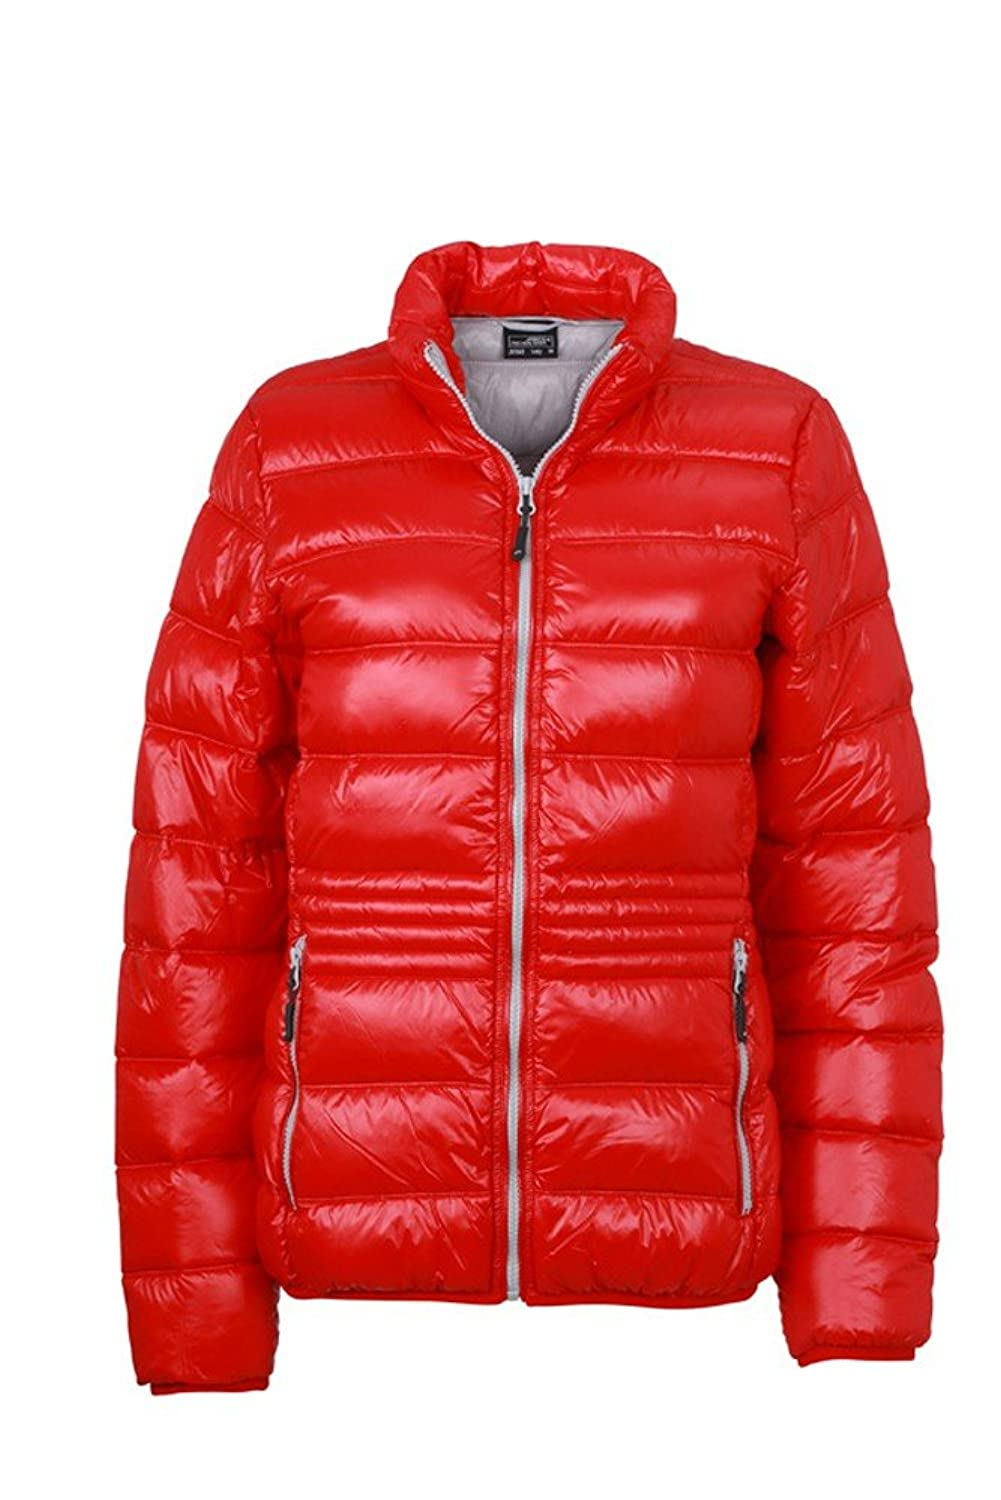 JN1063 Ladies´ Winter Down Jacke Damenjacke Daunenjacke Daunen